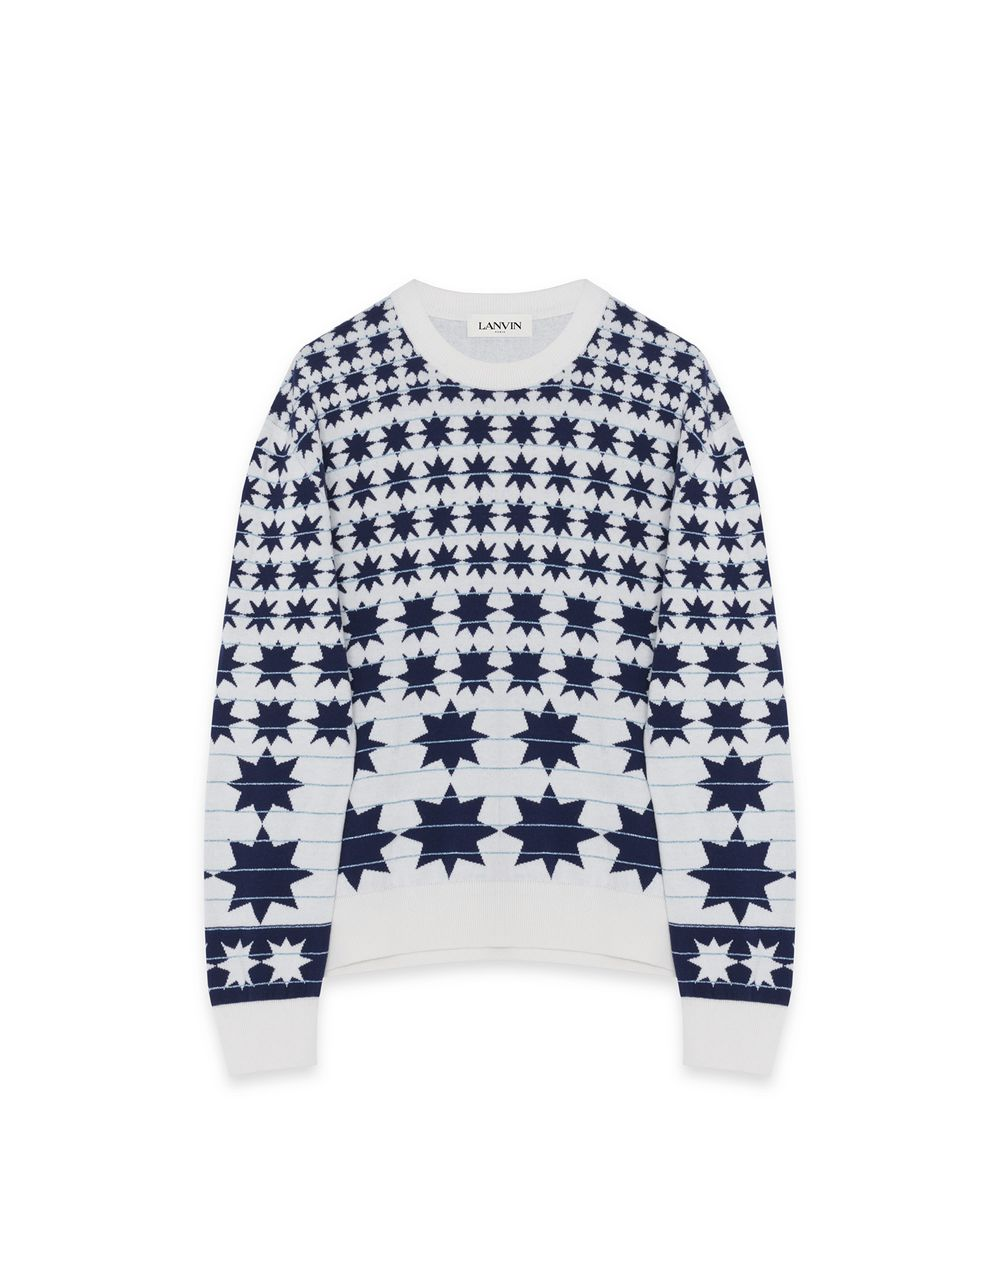 FULL SUN SWEATER - Lanvin